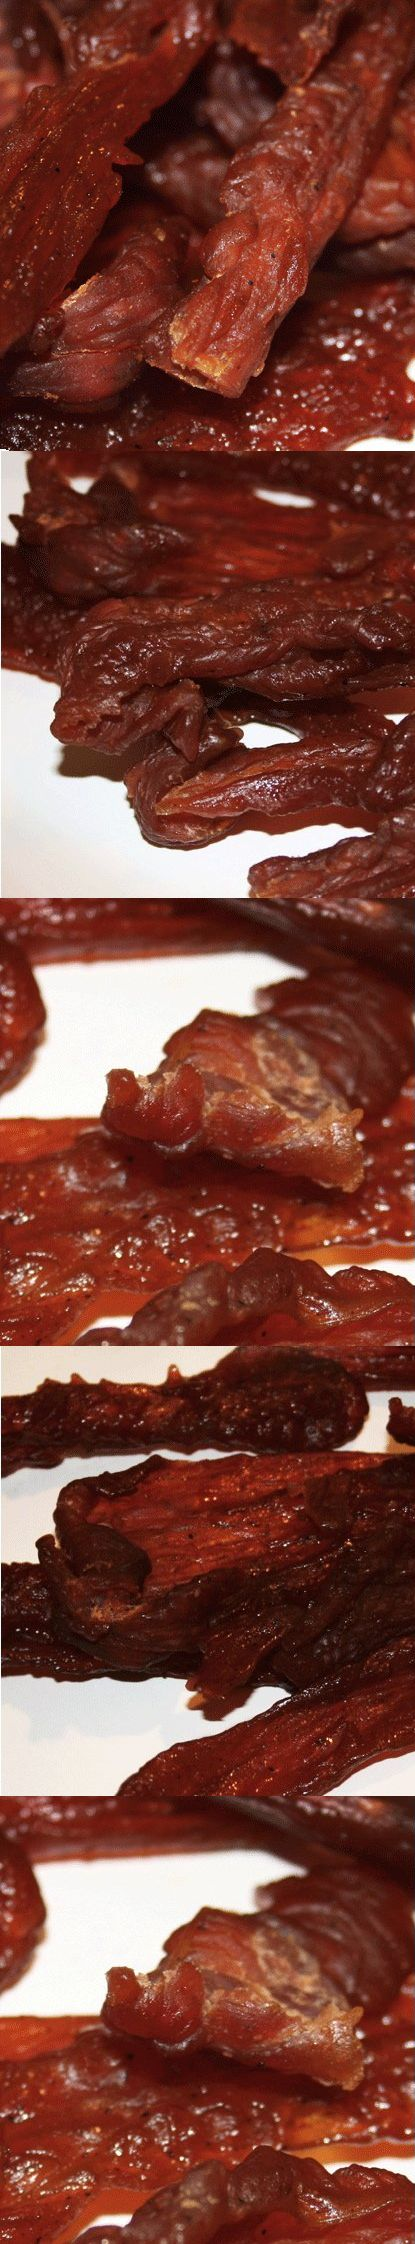 Bulk Beef Jerky's Honey BBQ Smoked Turkey Jerky - 1 Lb, Bulk Beef Jerky's Honey BBQ Turkey Jerky is marinated in our Honey BBQ sauce. We also provide this flavor in 4oz resealable bags. Lean cuts of turkey marinated for hours in our special Honey BBQ sauce..., #Grocery, #Jerky & Dried Meats, $25.48